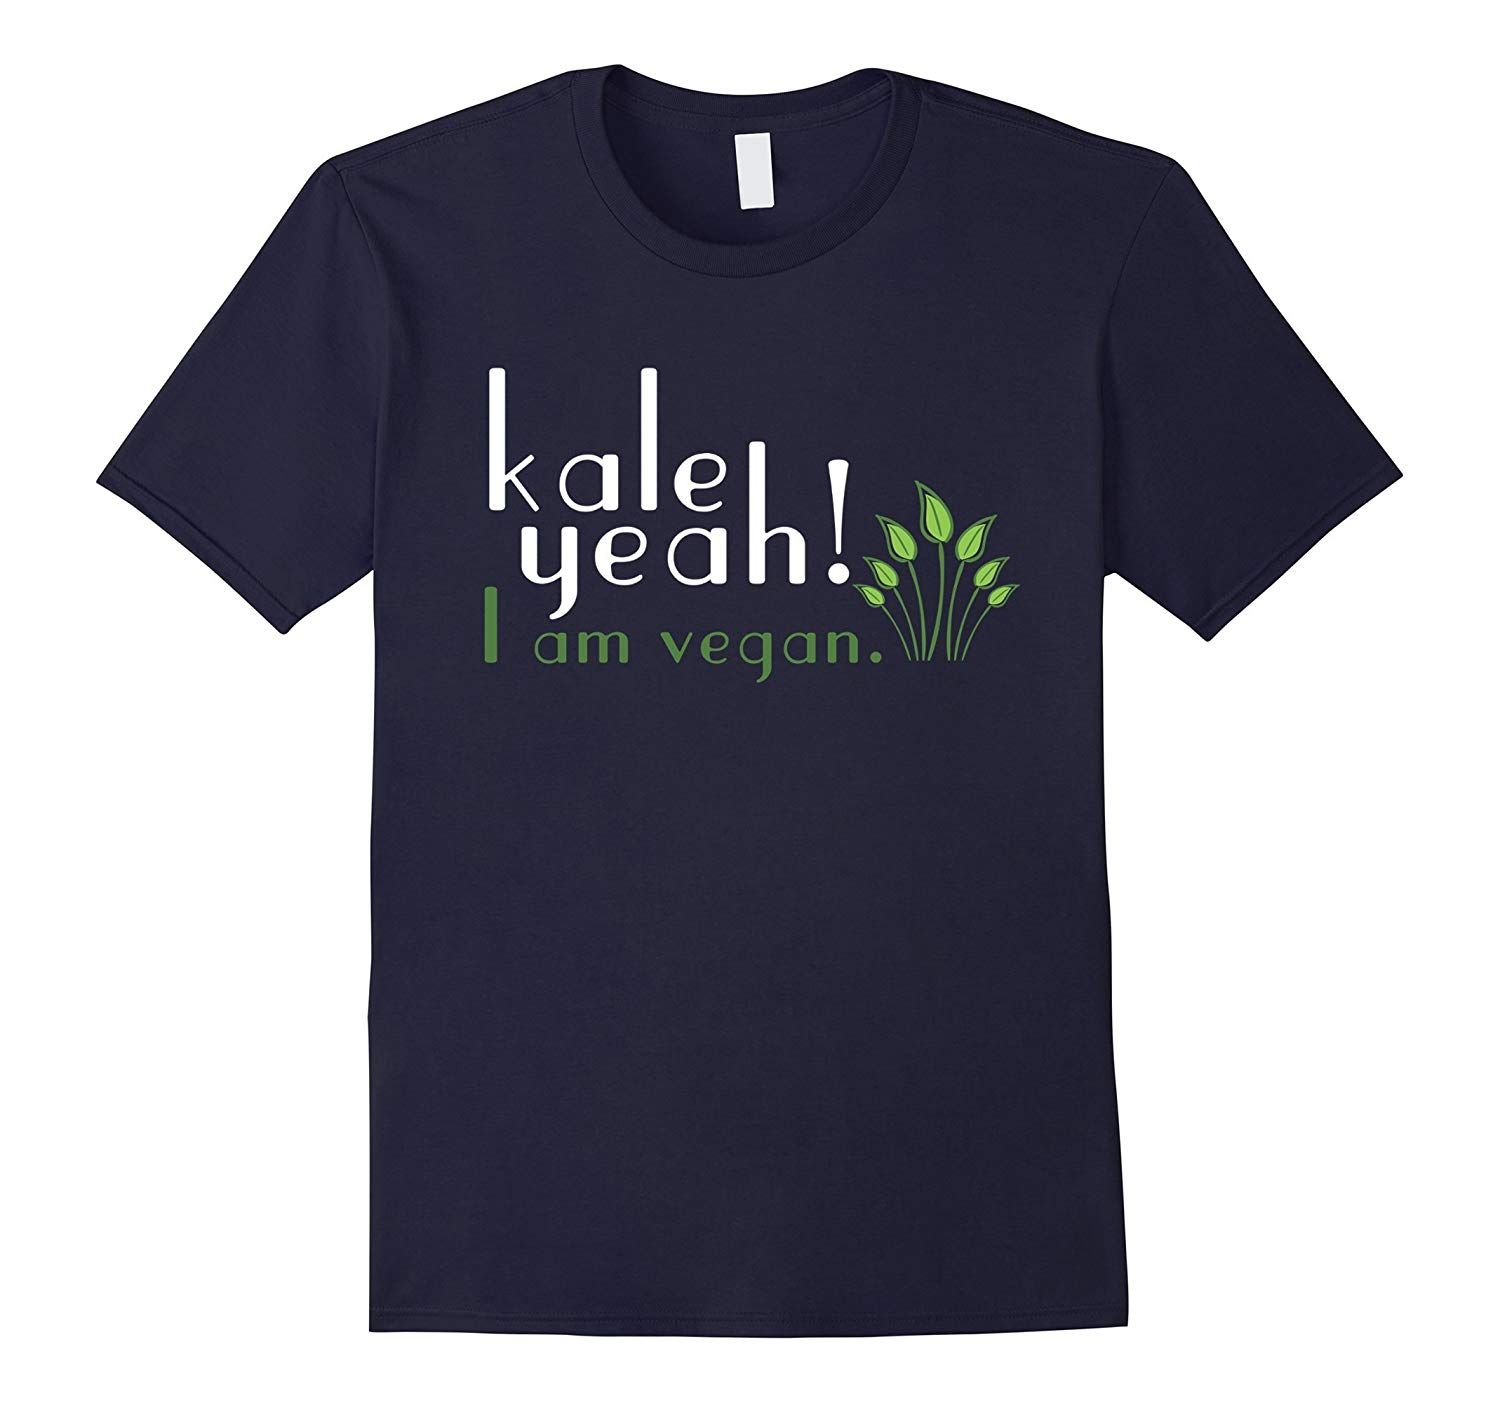 Funny vegan quotes T-shirt – Kale Yeah I am Vegan #veganquotes